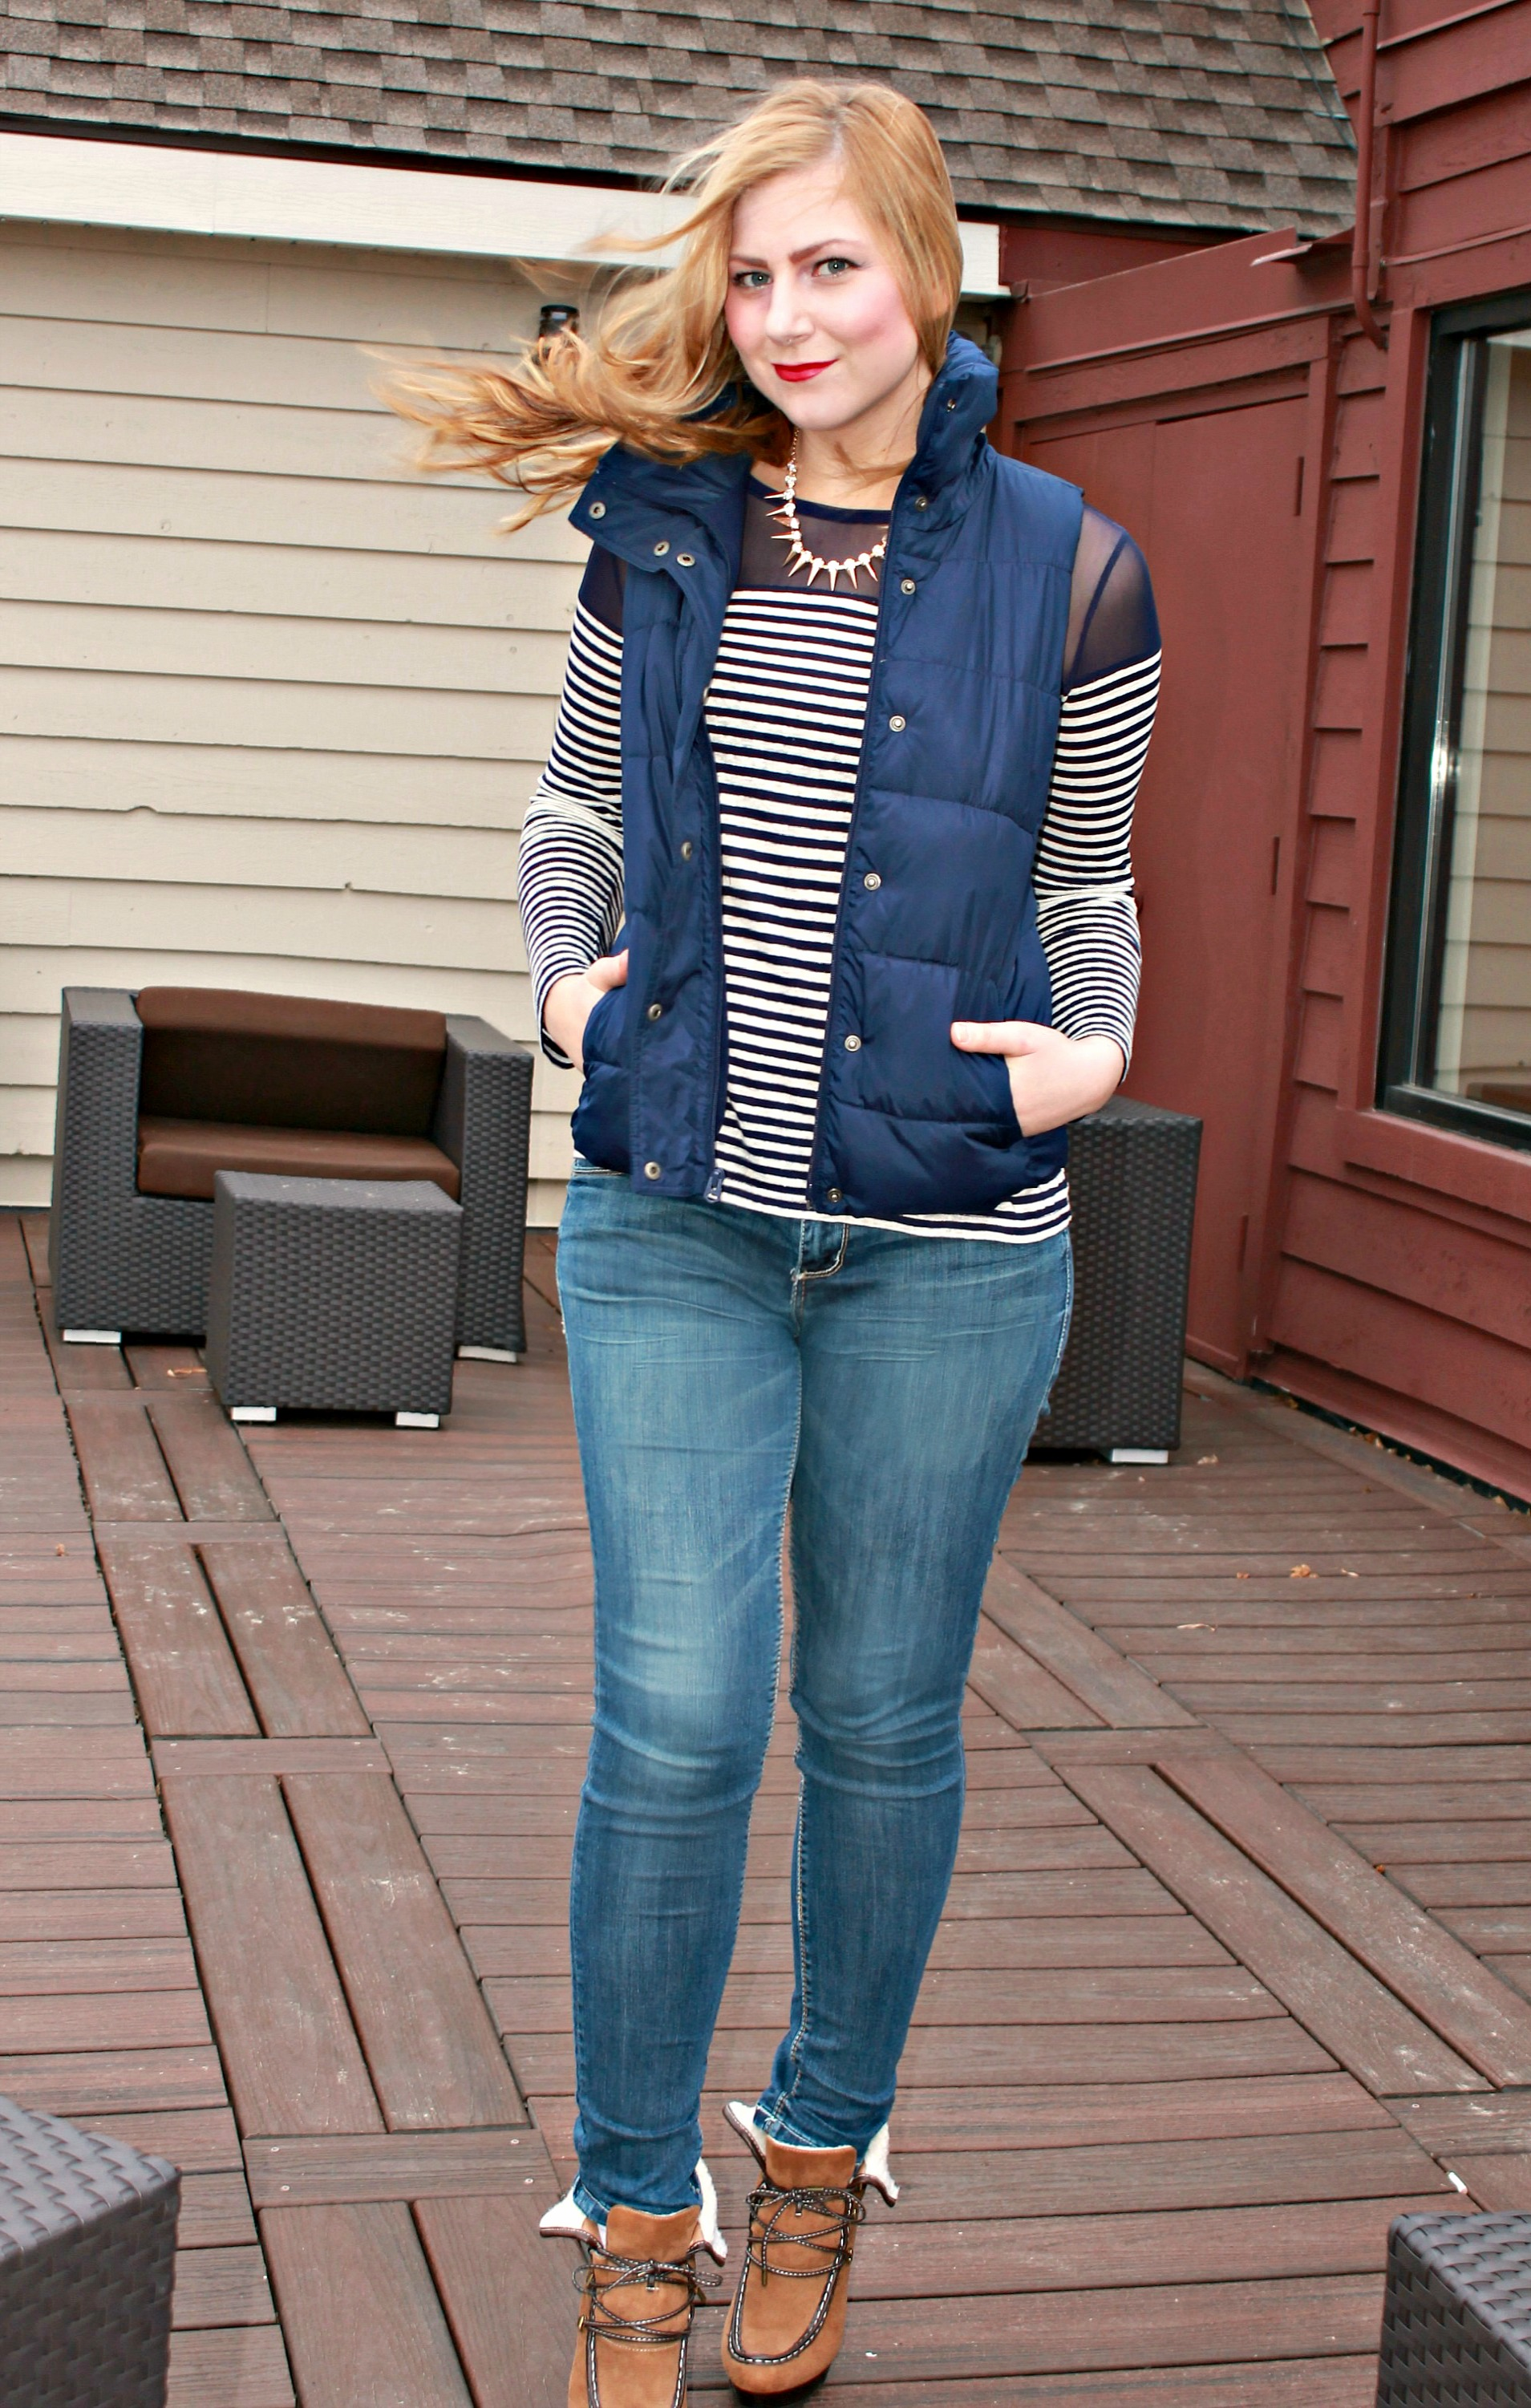 striped shirt + heeled booties